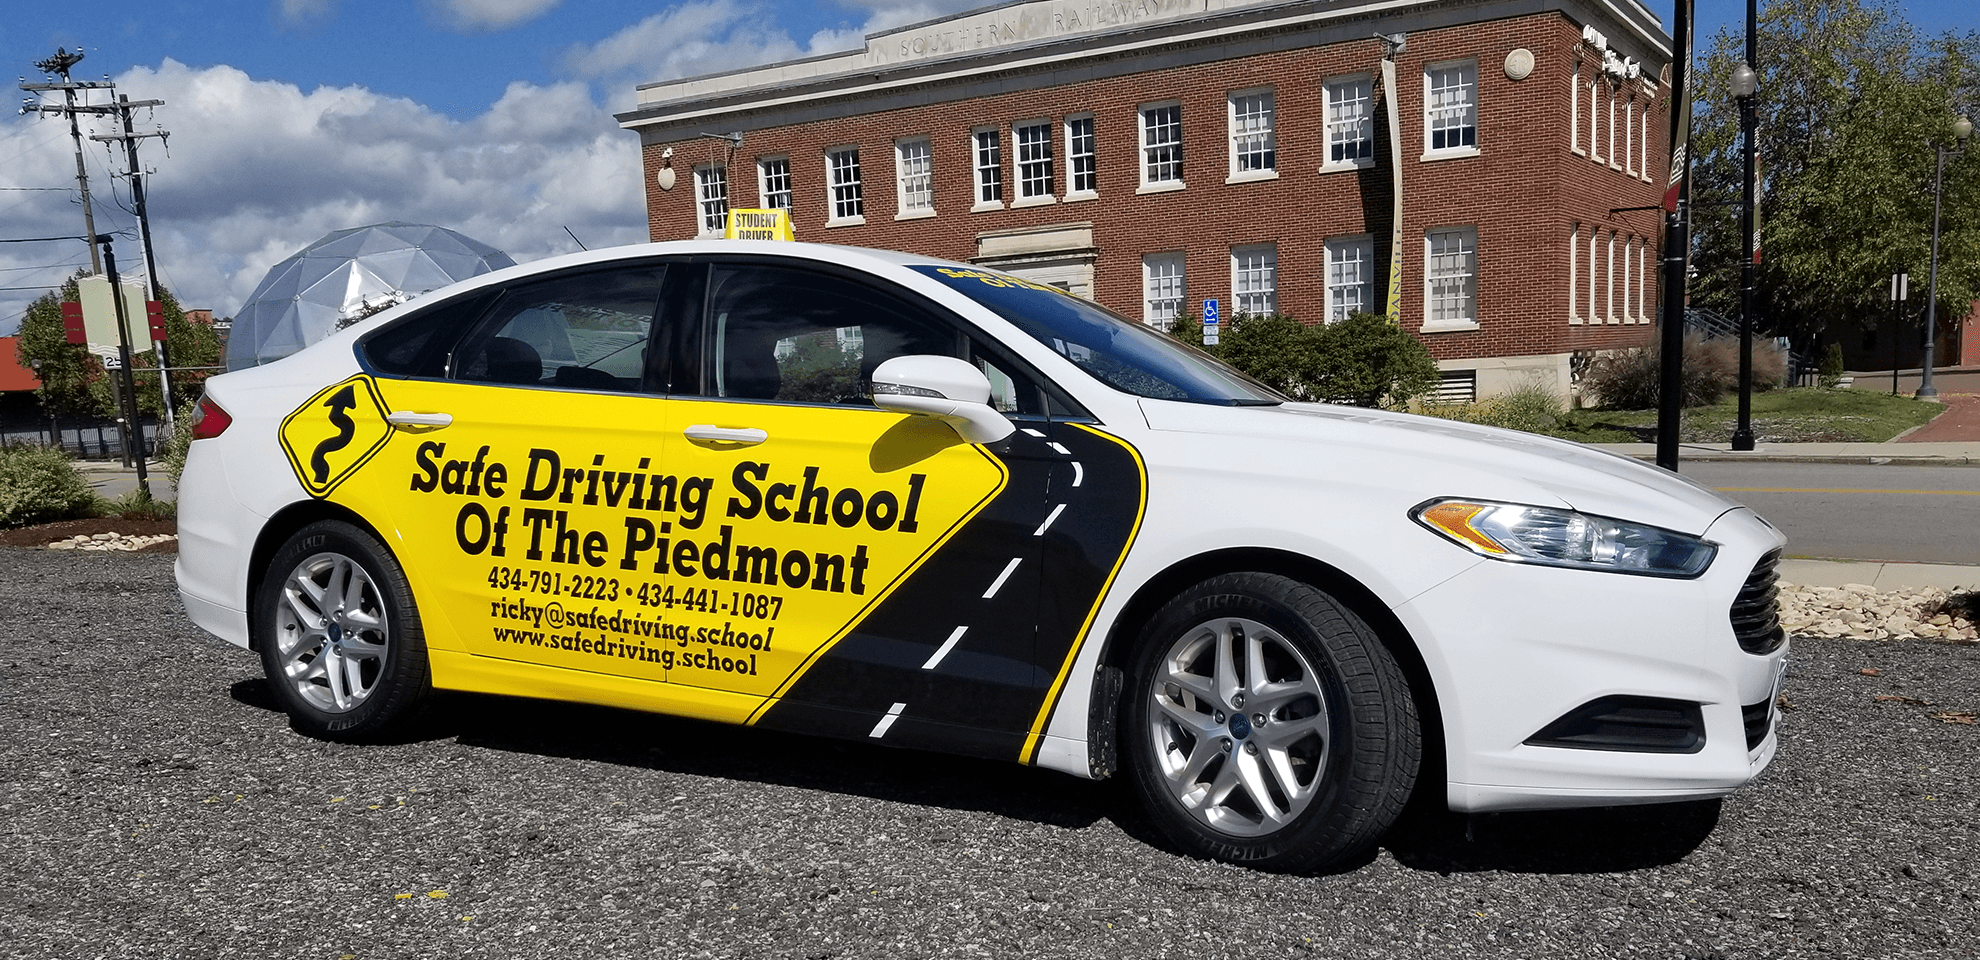 safe driving school of the piedmont car